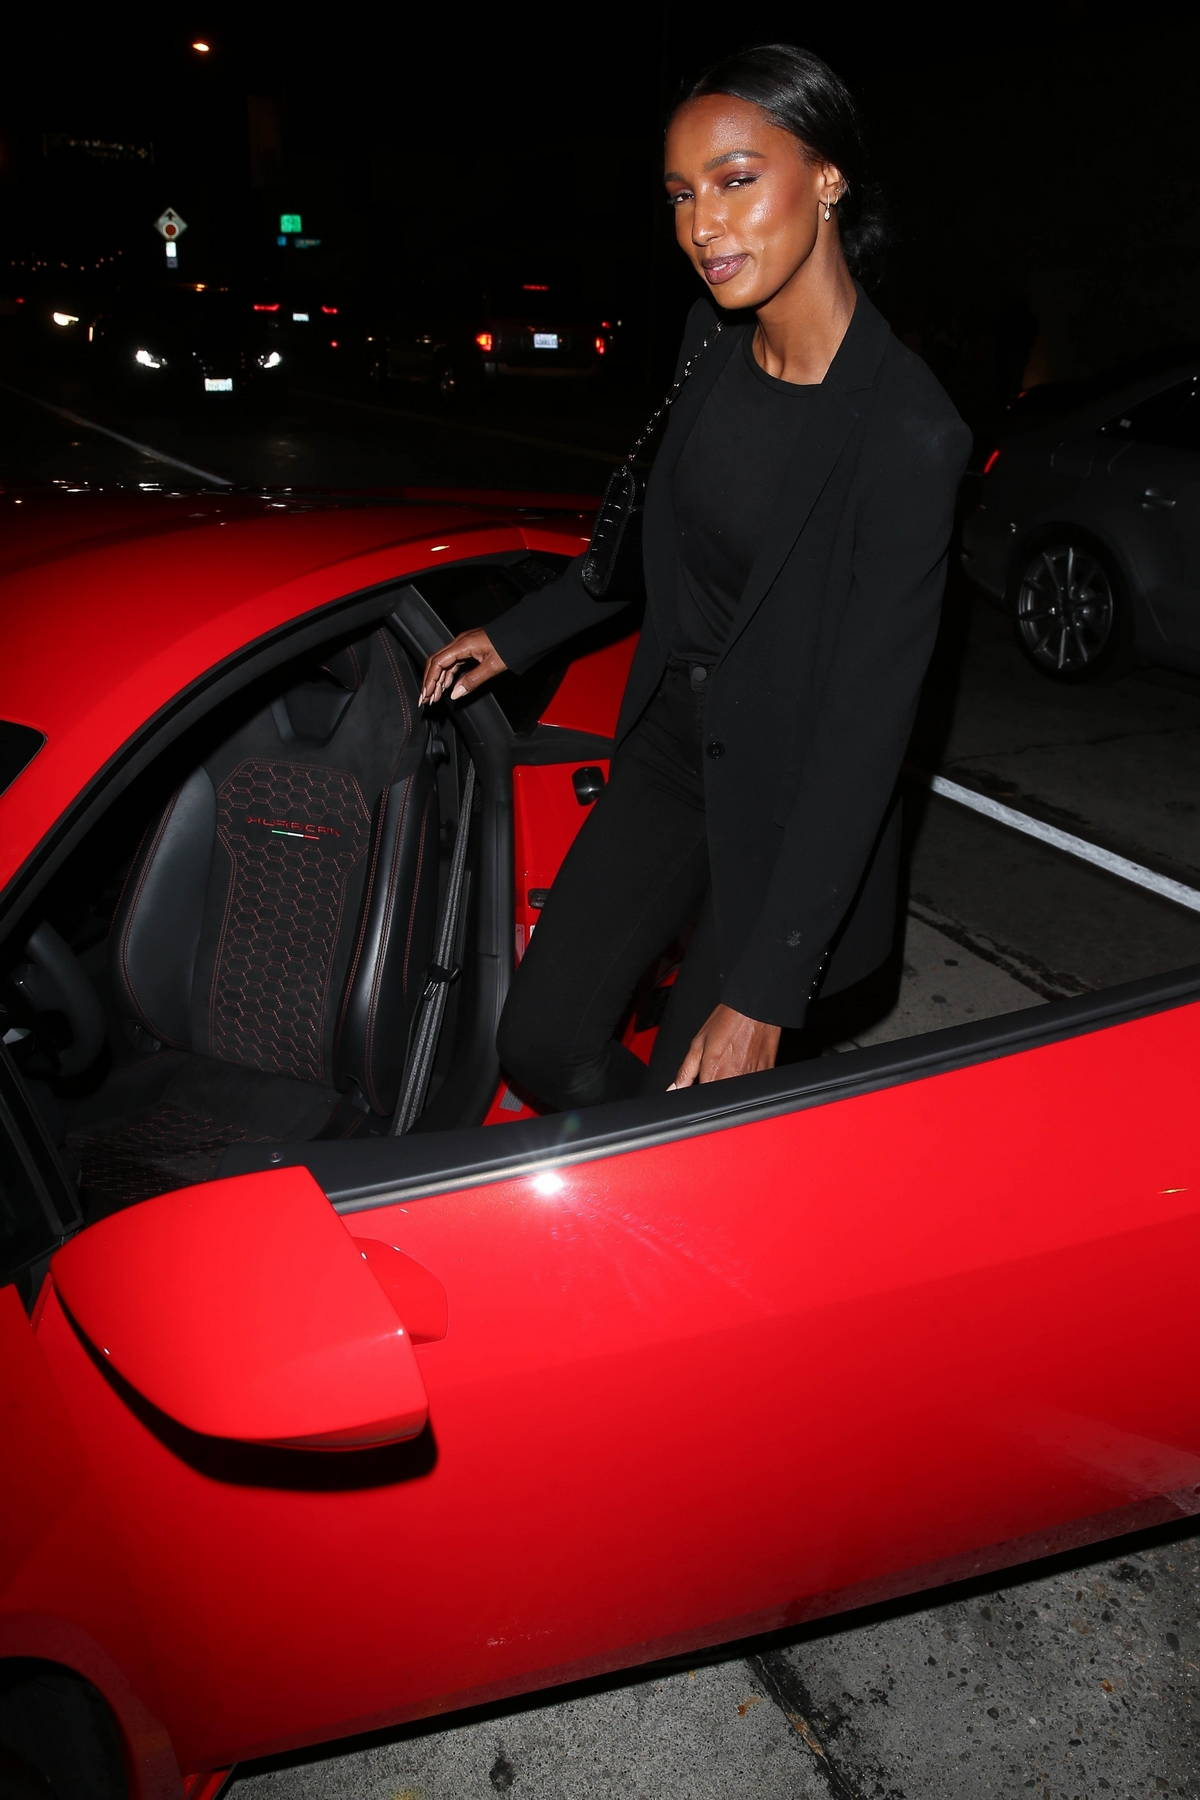 Jasmine Tookes drives off in her new red hot Lamborghini after dinner at Craig's in West Hollywood, California